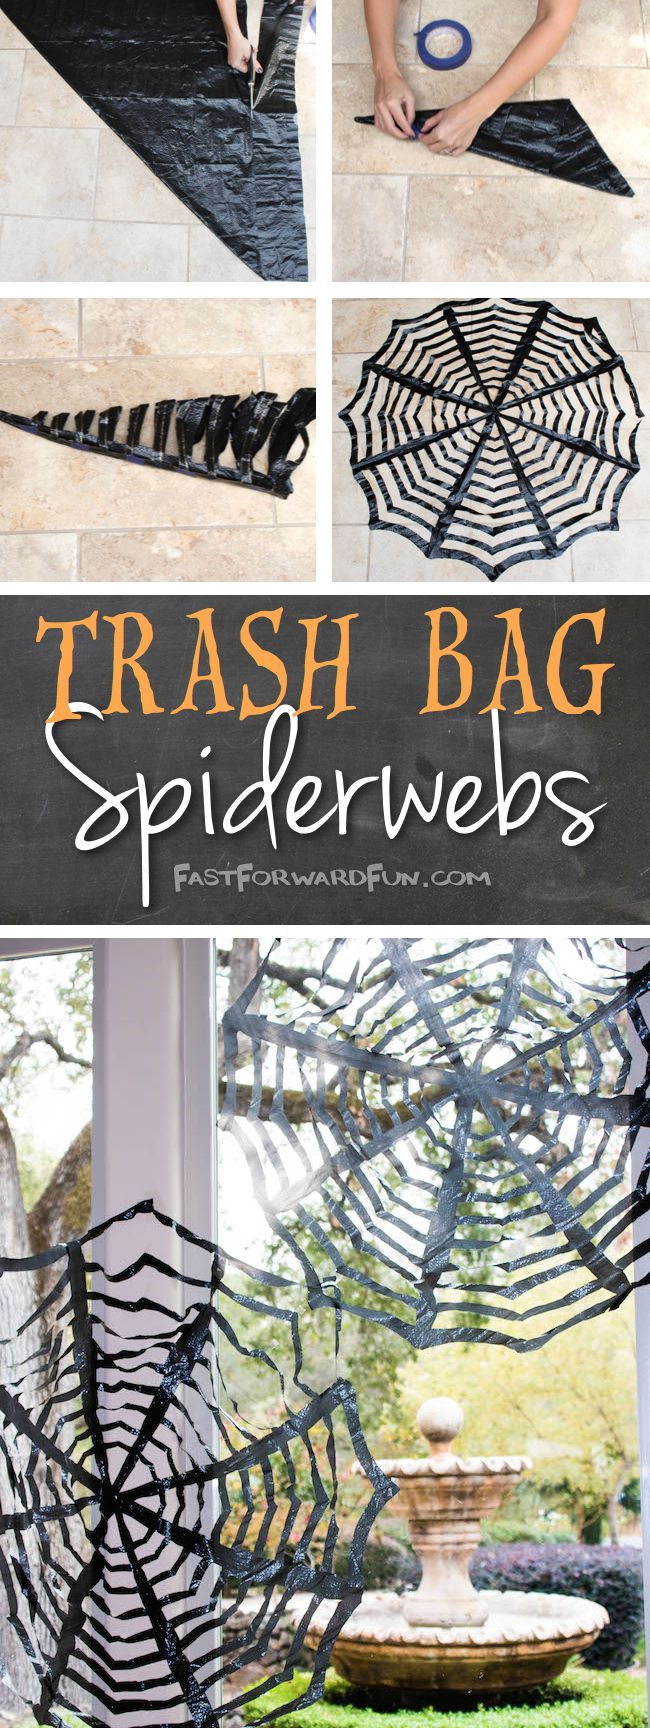 Easy DIY Trashbag Spiderweb Tutorial — Fun video and lots of step-by-step photos! Perfect for Hallowe